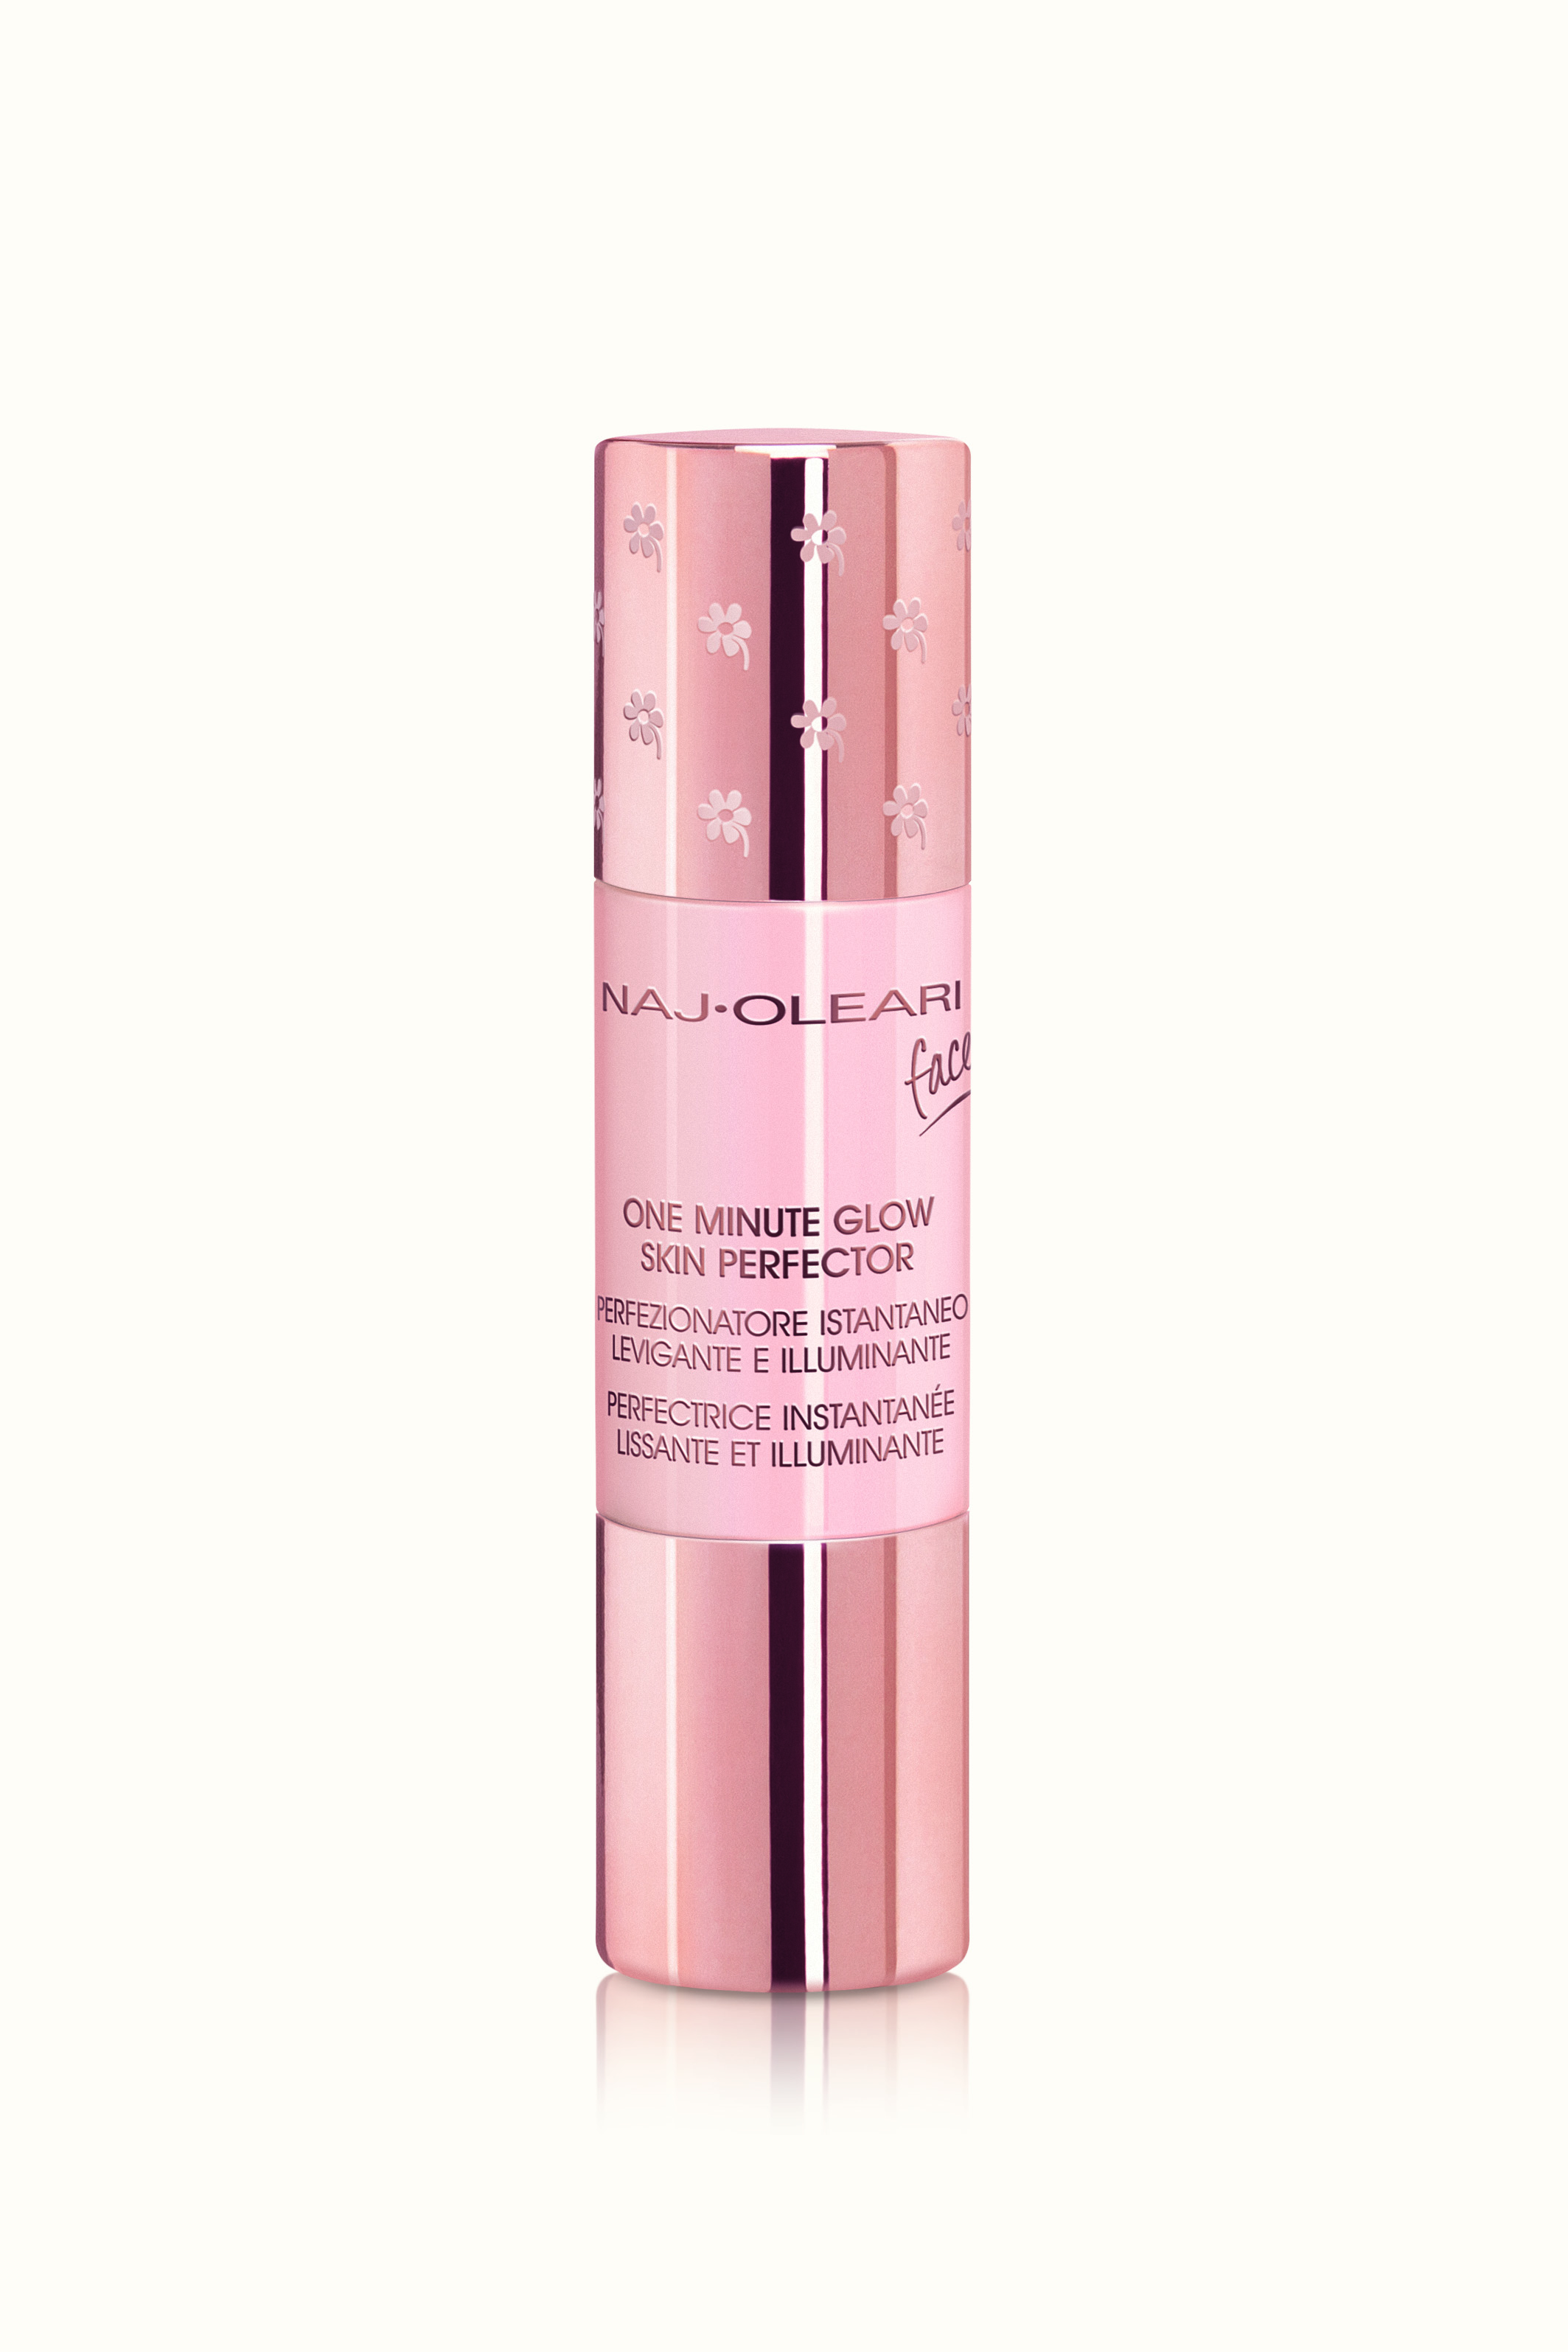 z – One minute glow skin Perfector